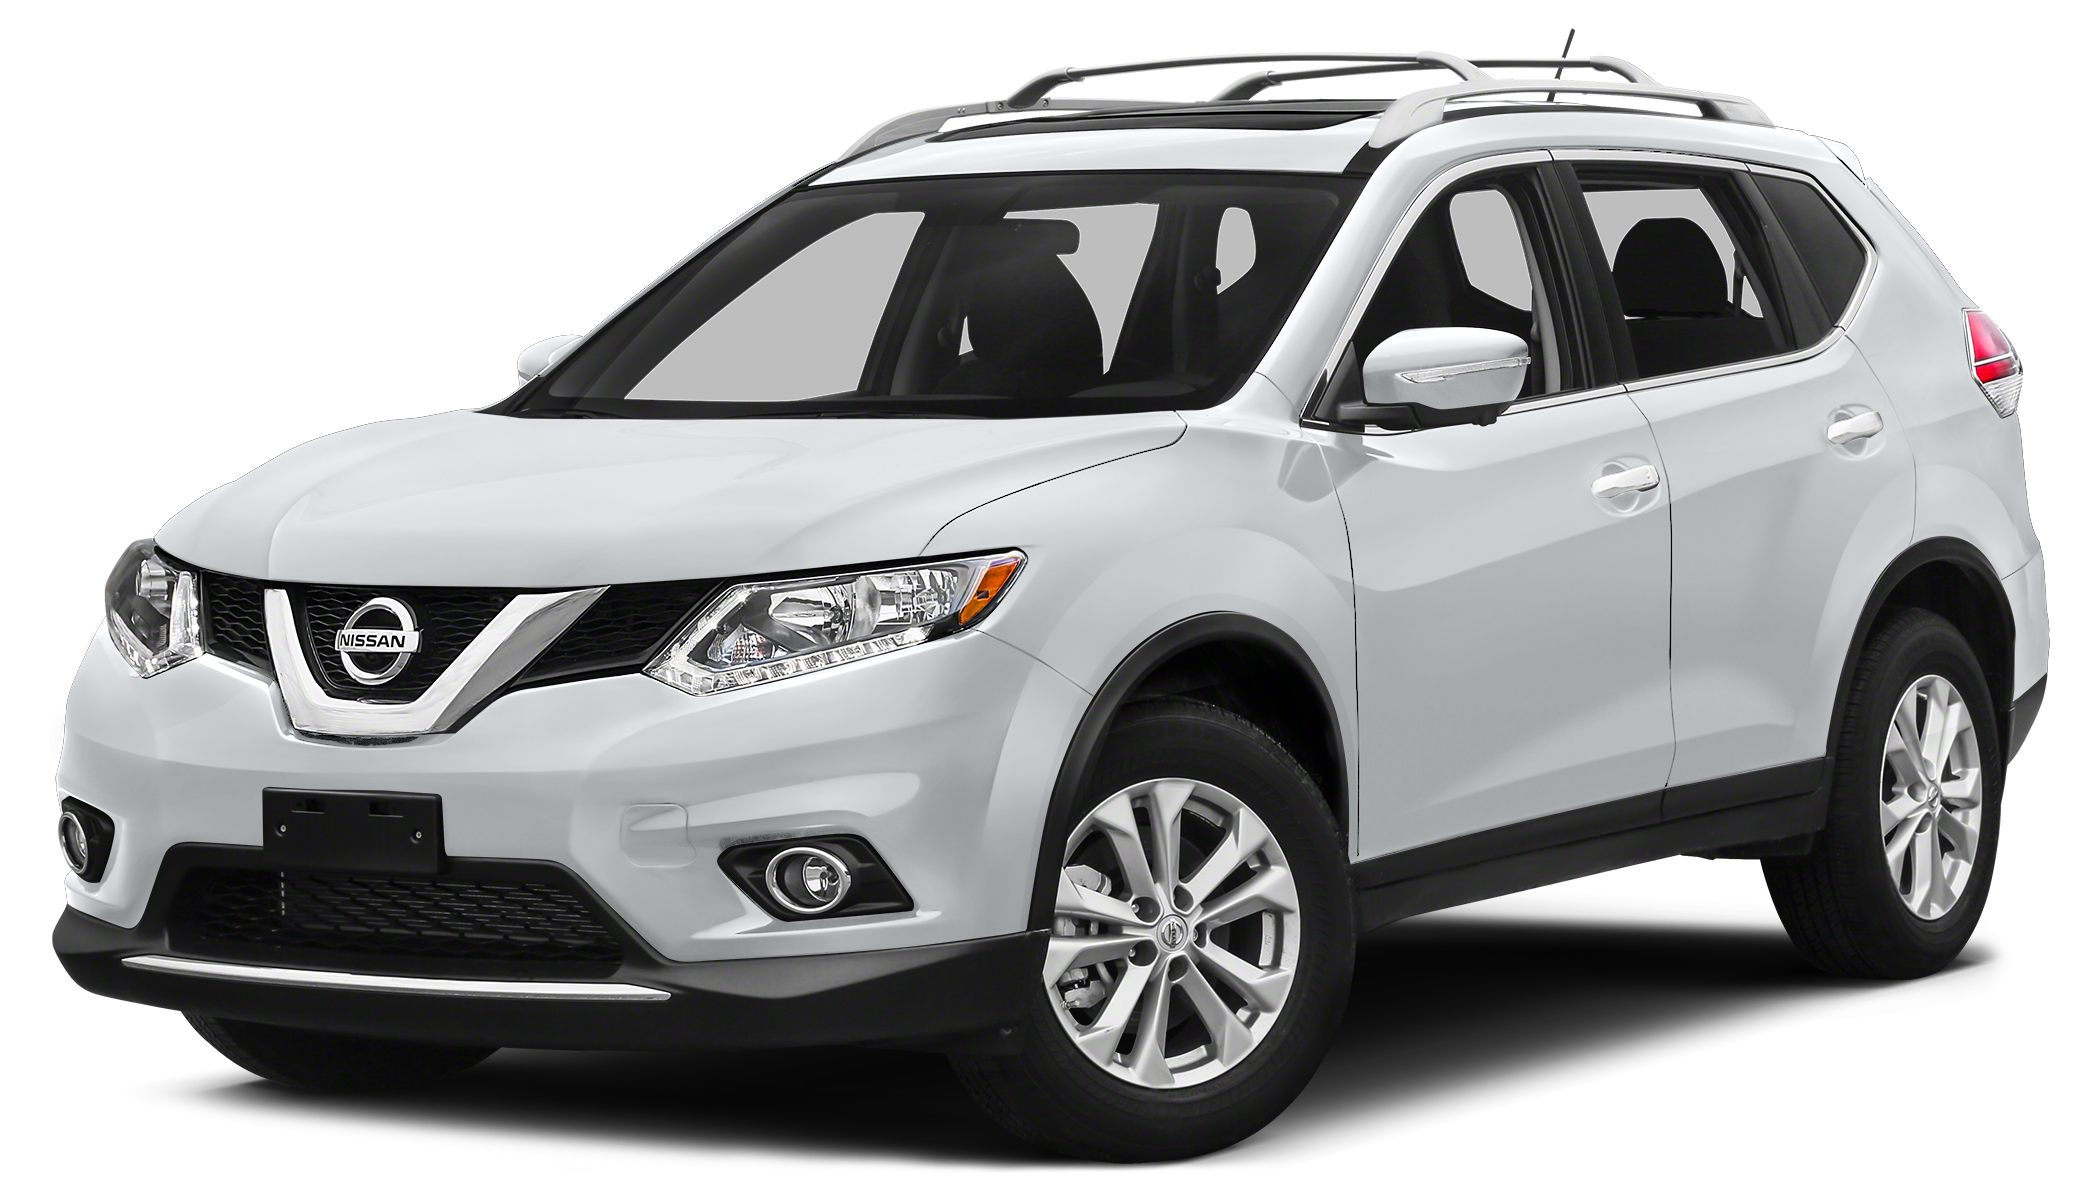 2015 Nissan Rogue S ONLY 1 PREVIOUS OWNER ON THIS WELL MAINTAINED ROGUE THATS FACTORY CERTIFIED T